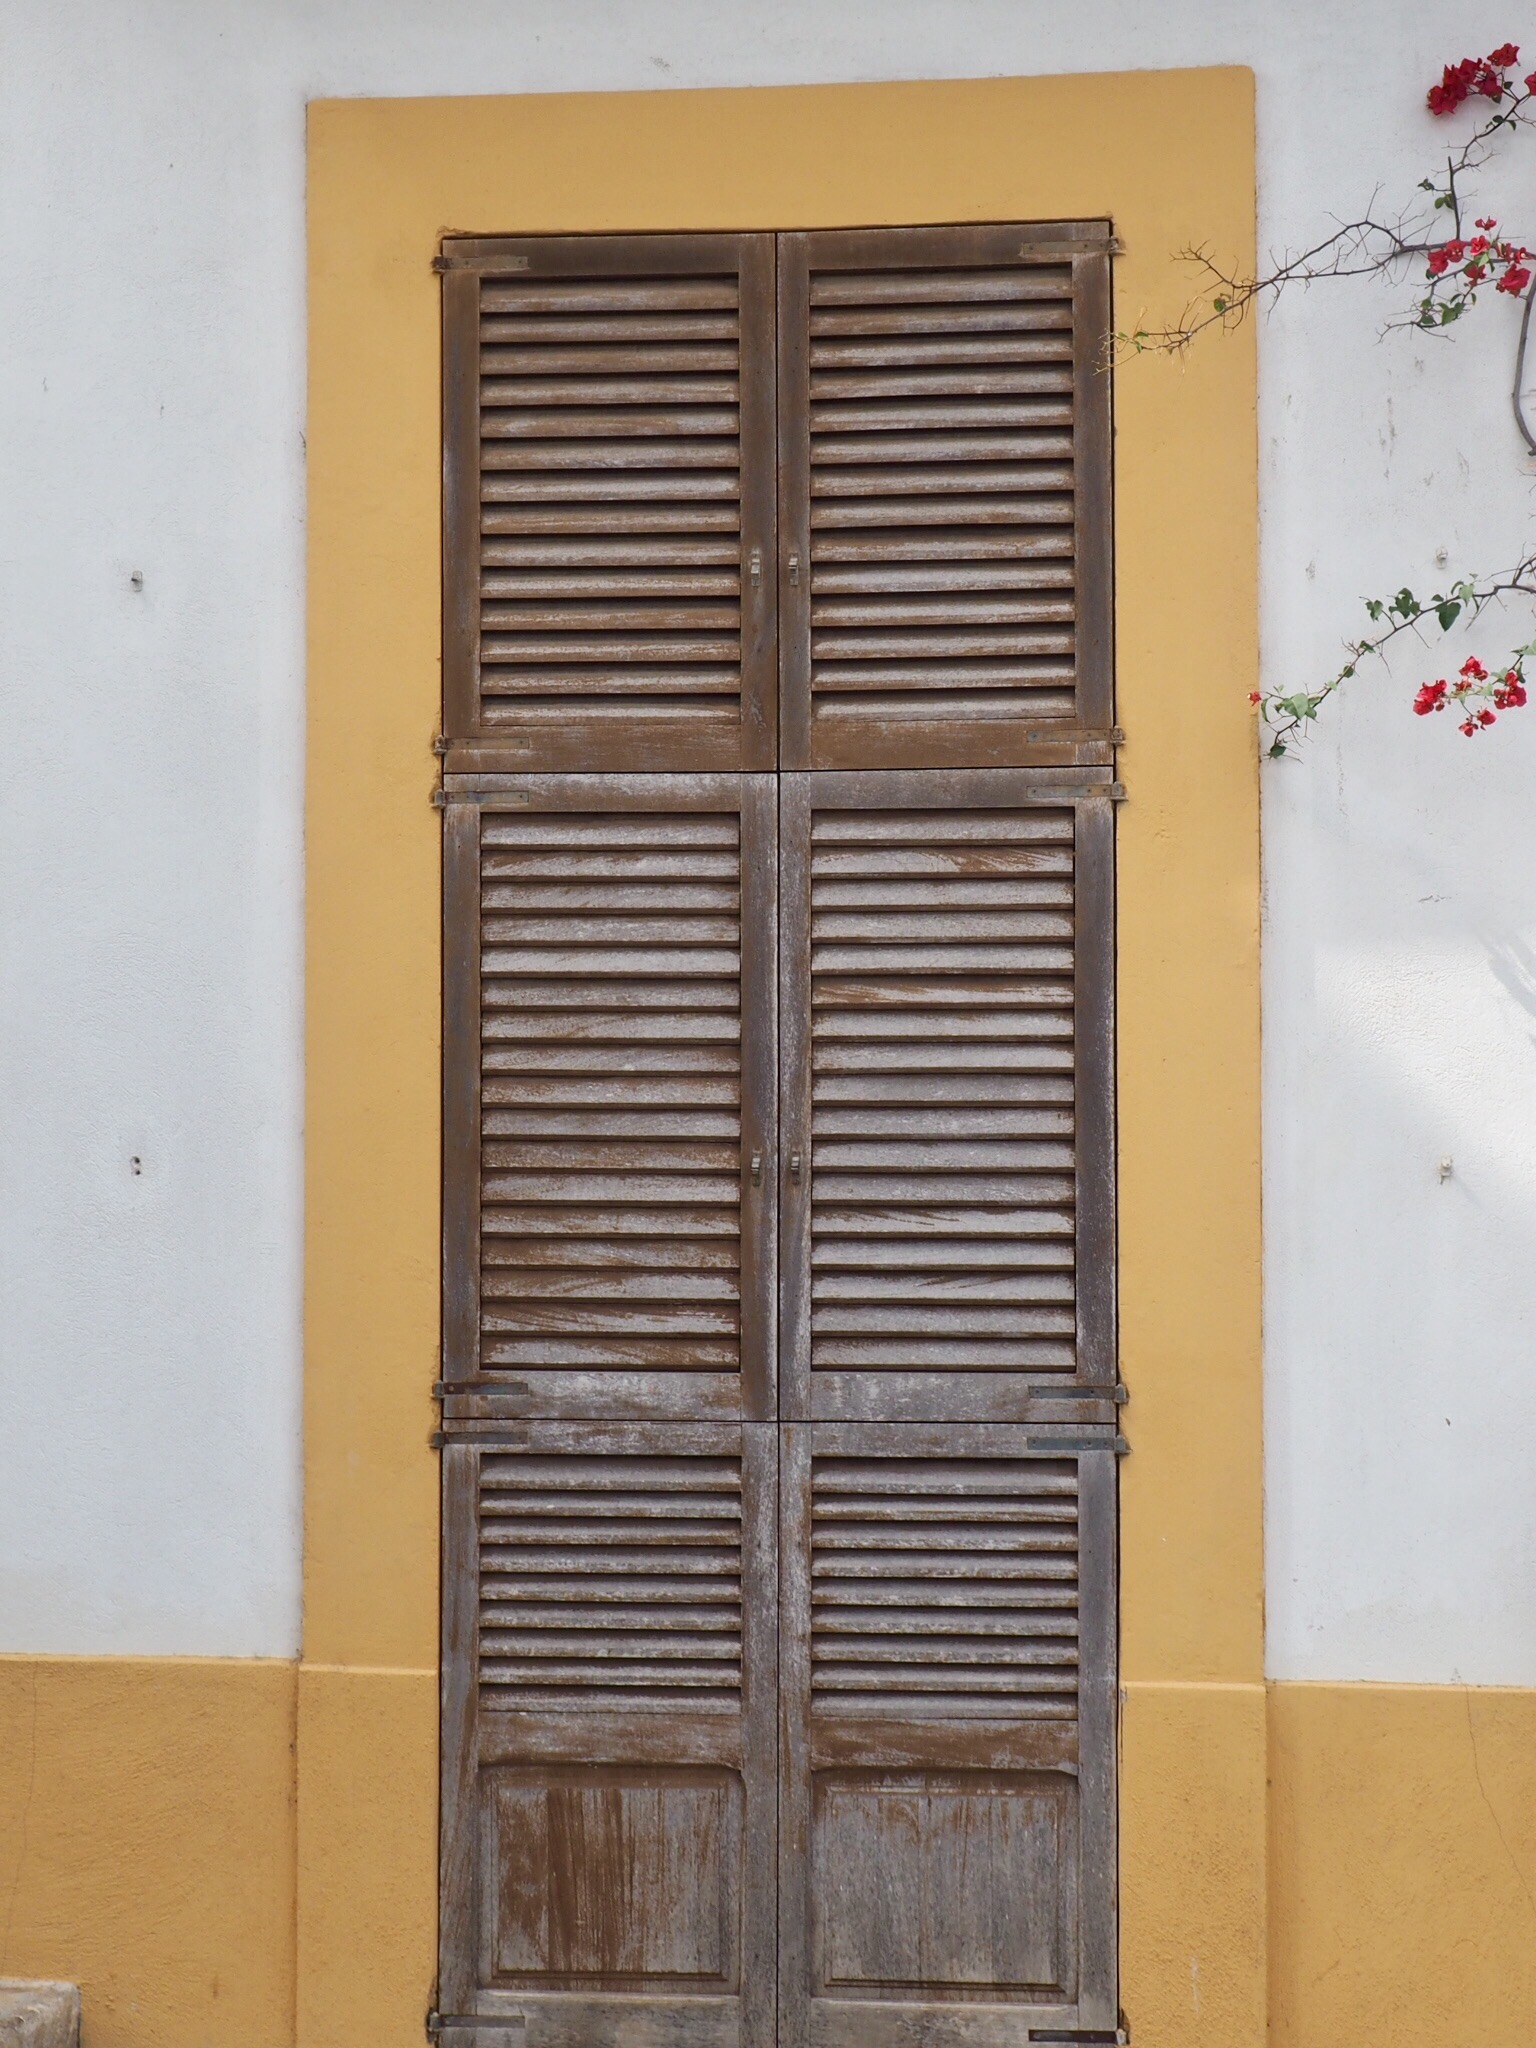 Another old doorway in Ibiza